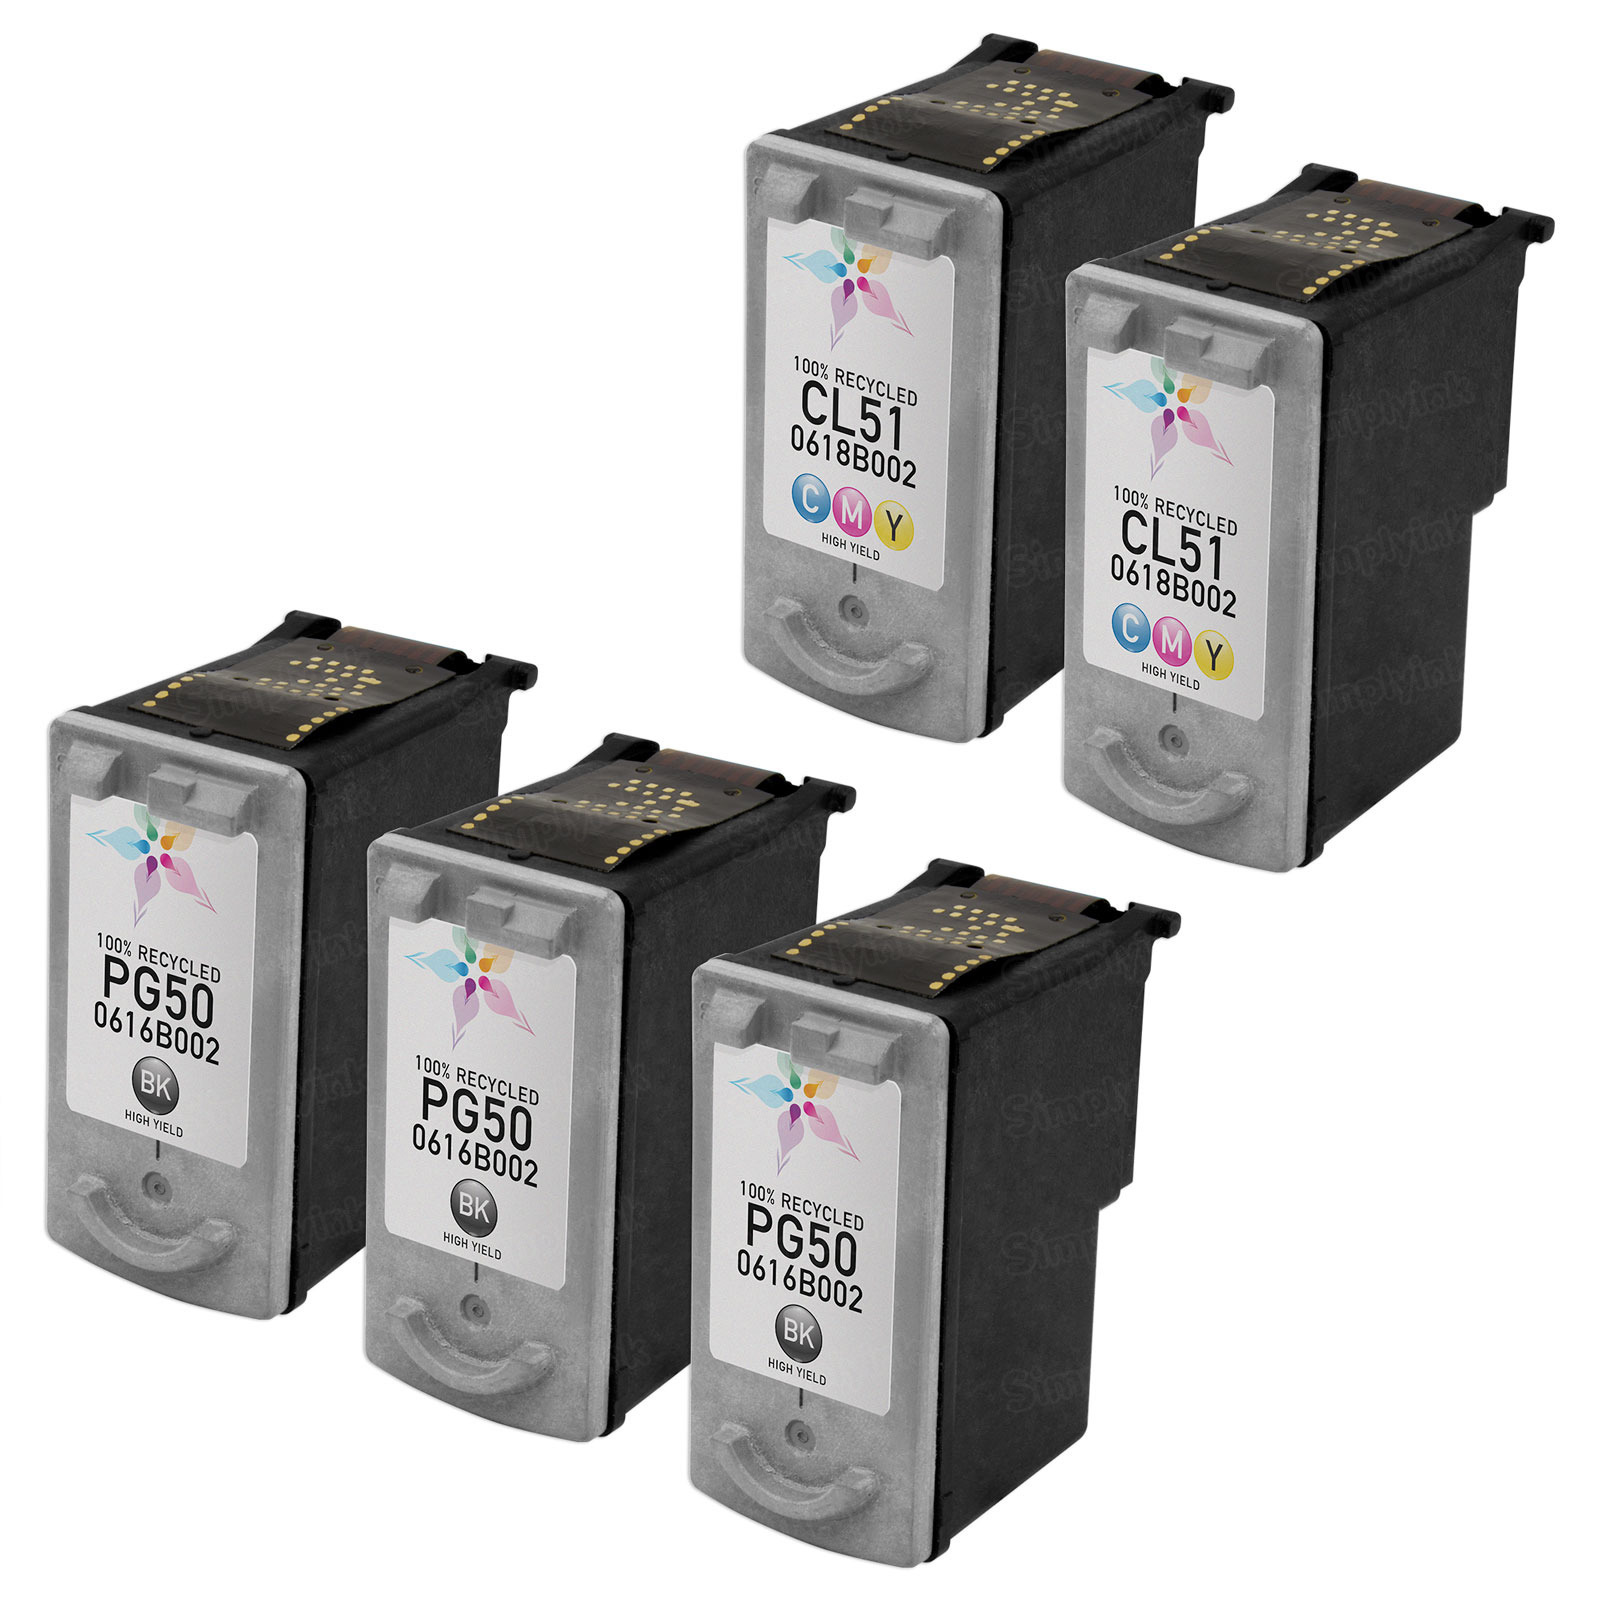 Inkjet Supplies for Canon Printers - Remanufactured Bulk Set of 5 Ink Cartridges 3 Black Canon PG-50 and 2 Color Canon CL-51